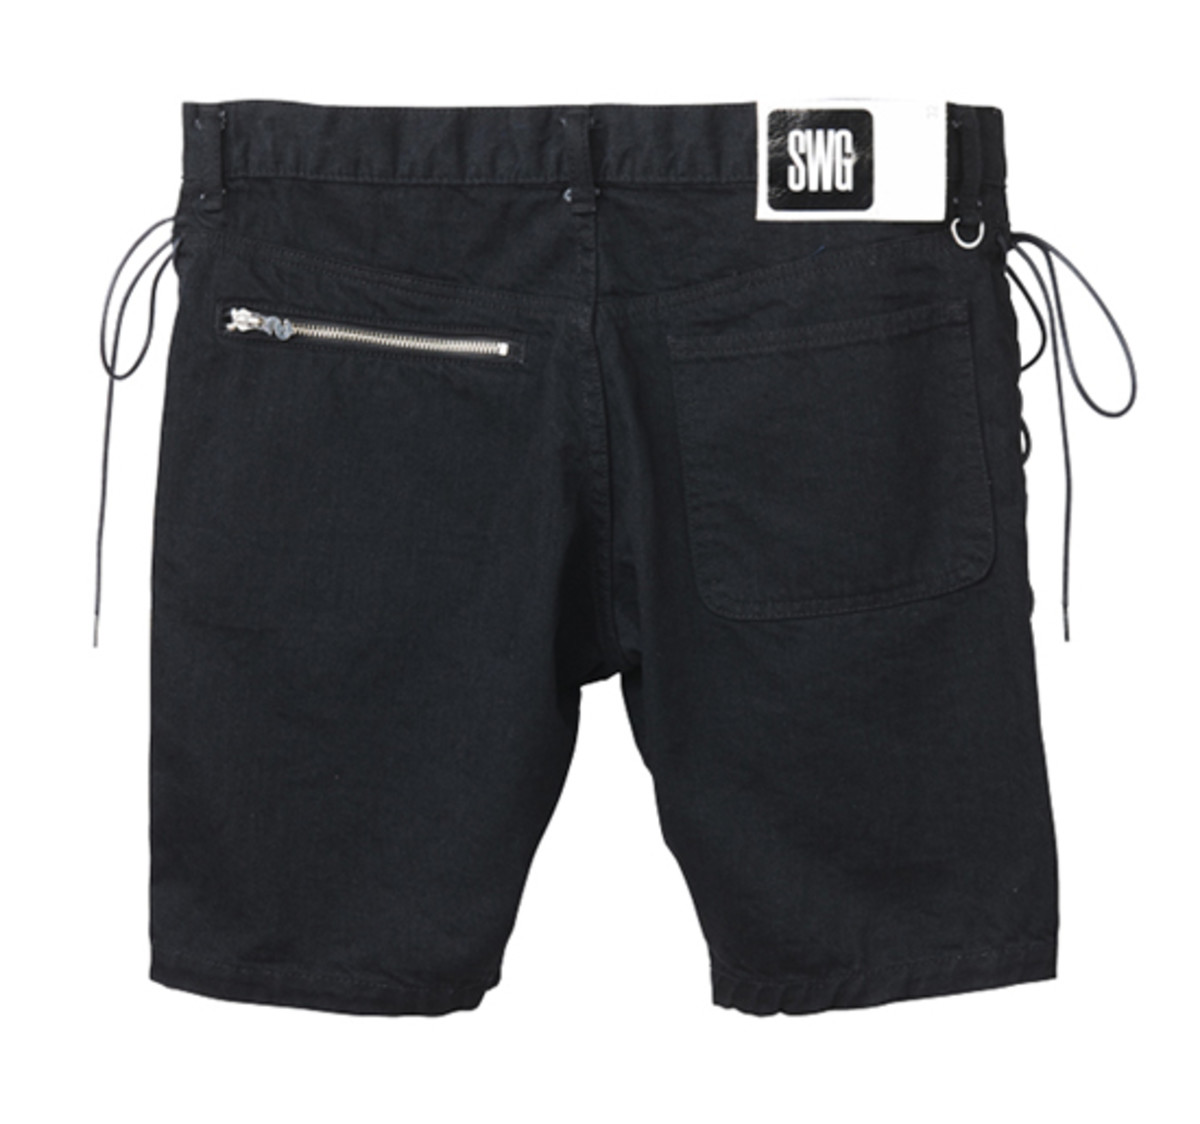 M.E.T.A.L. Denim Shorts Black 2